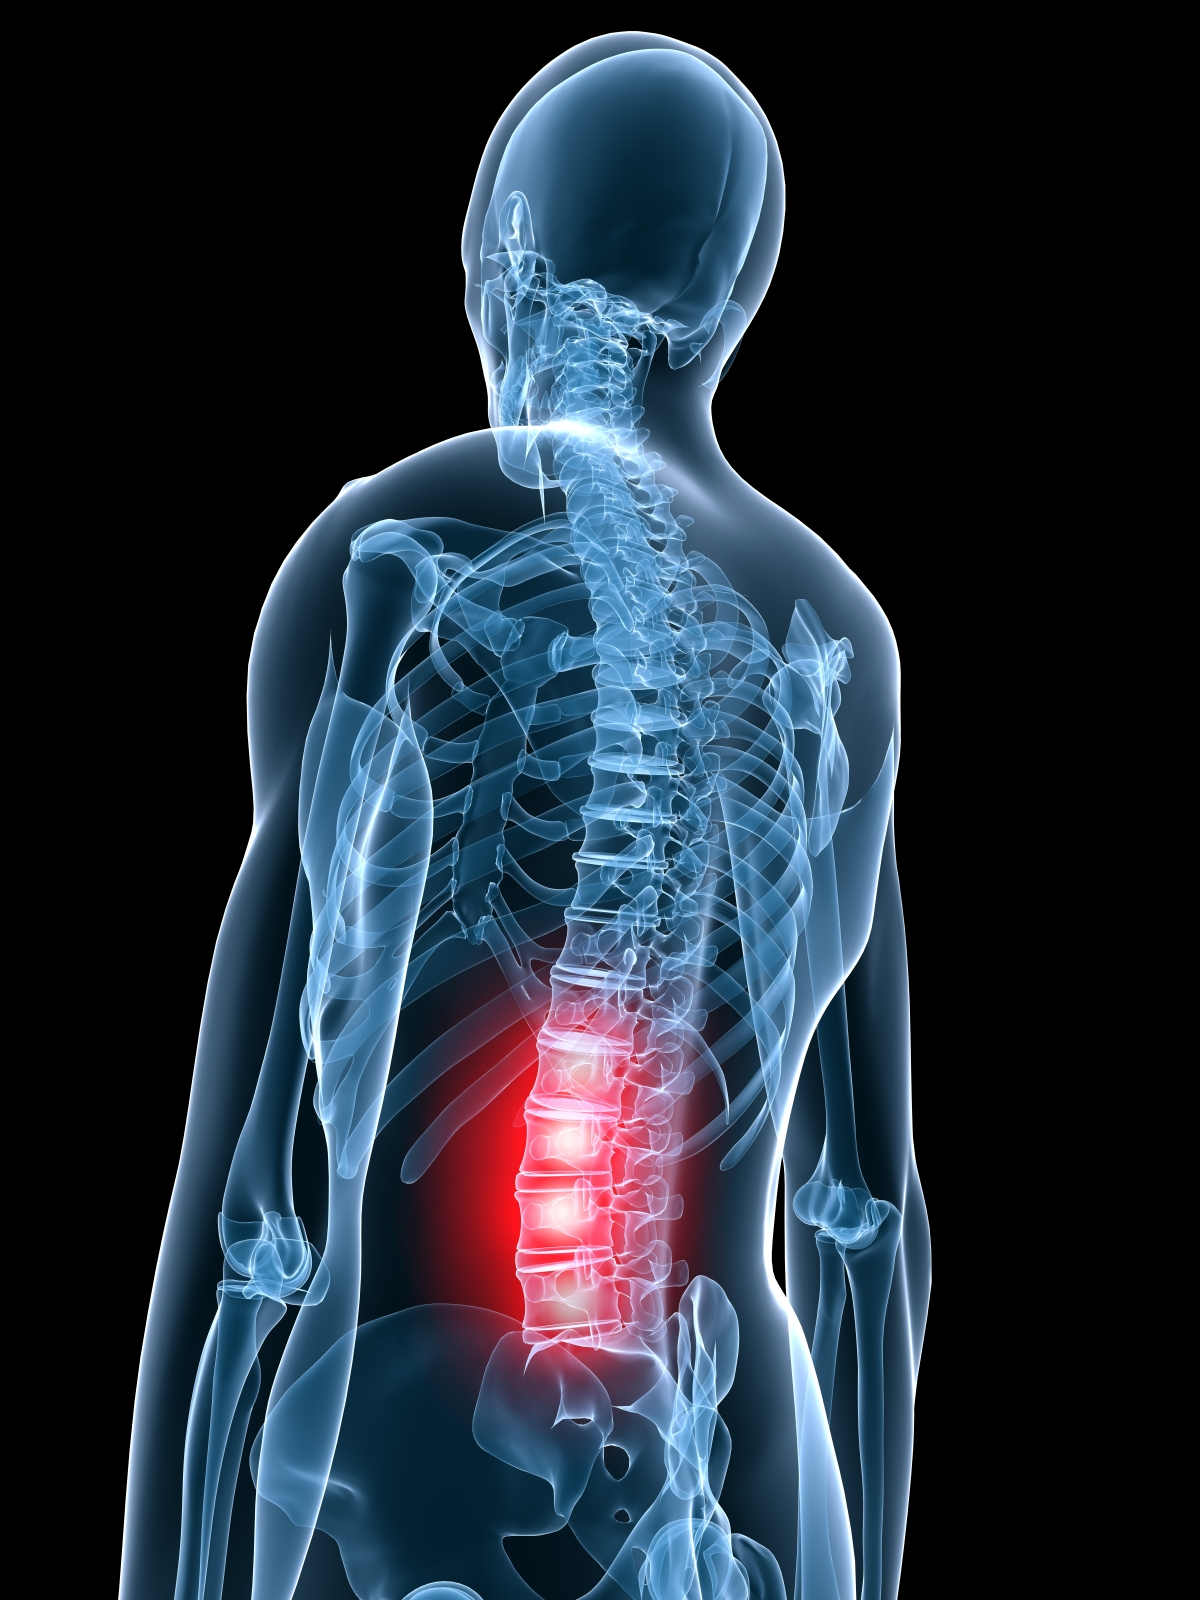 Cervical Radiculopathy Treatment in Austin